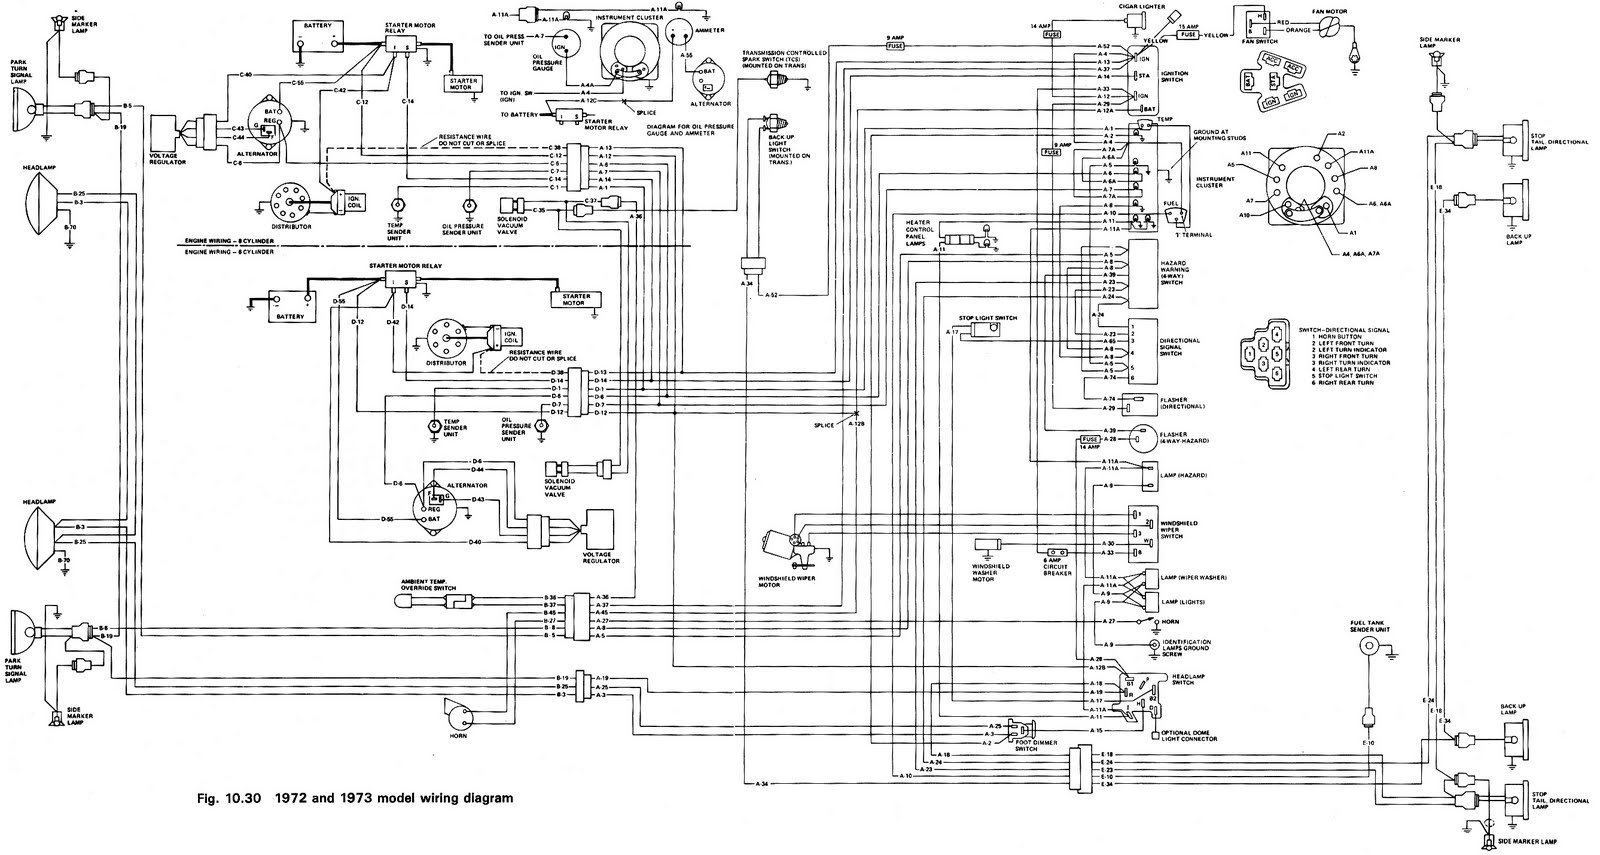 74 jeep cj5 wiring diagram 74 free engine image for user